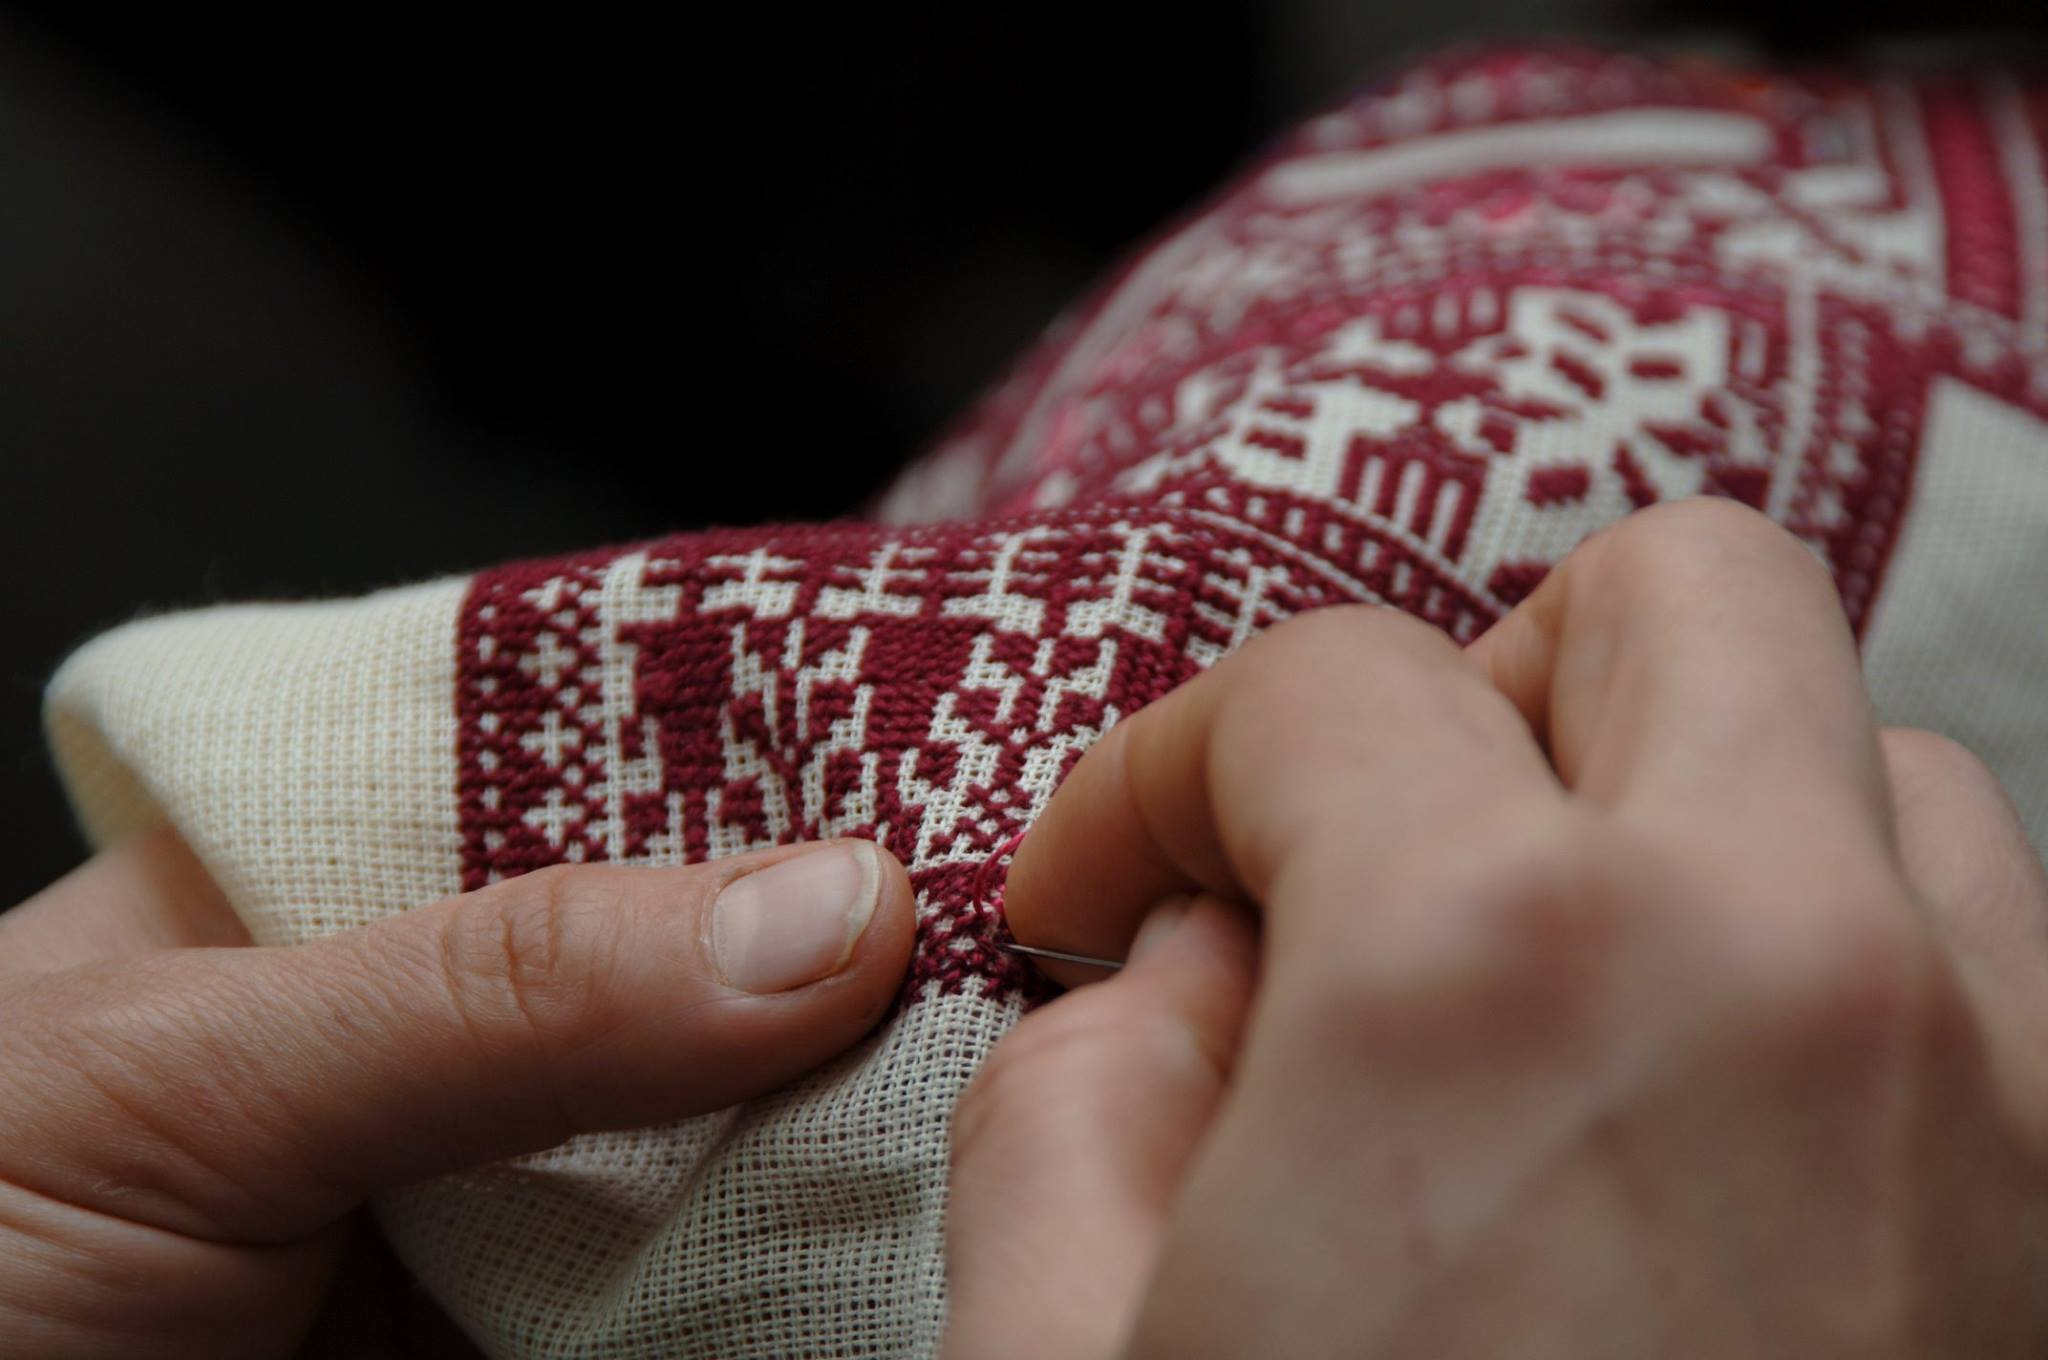 Palestinian embroidery | ©Facebook/inaashassociation